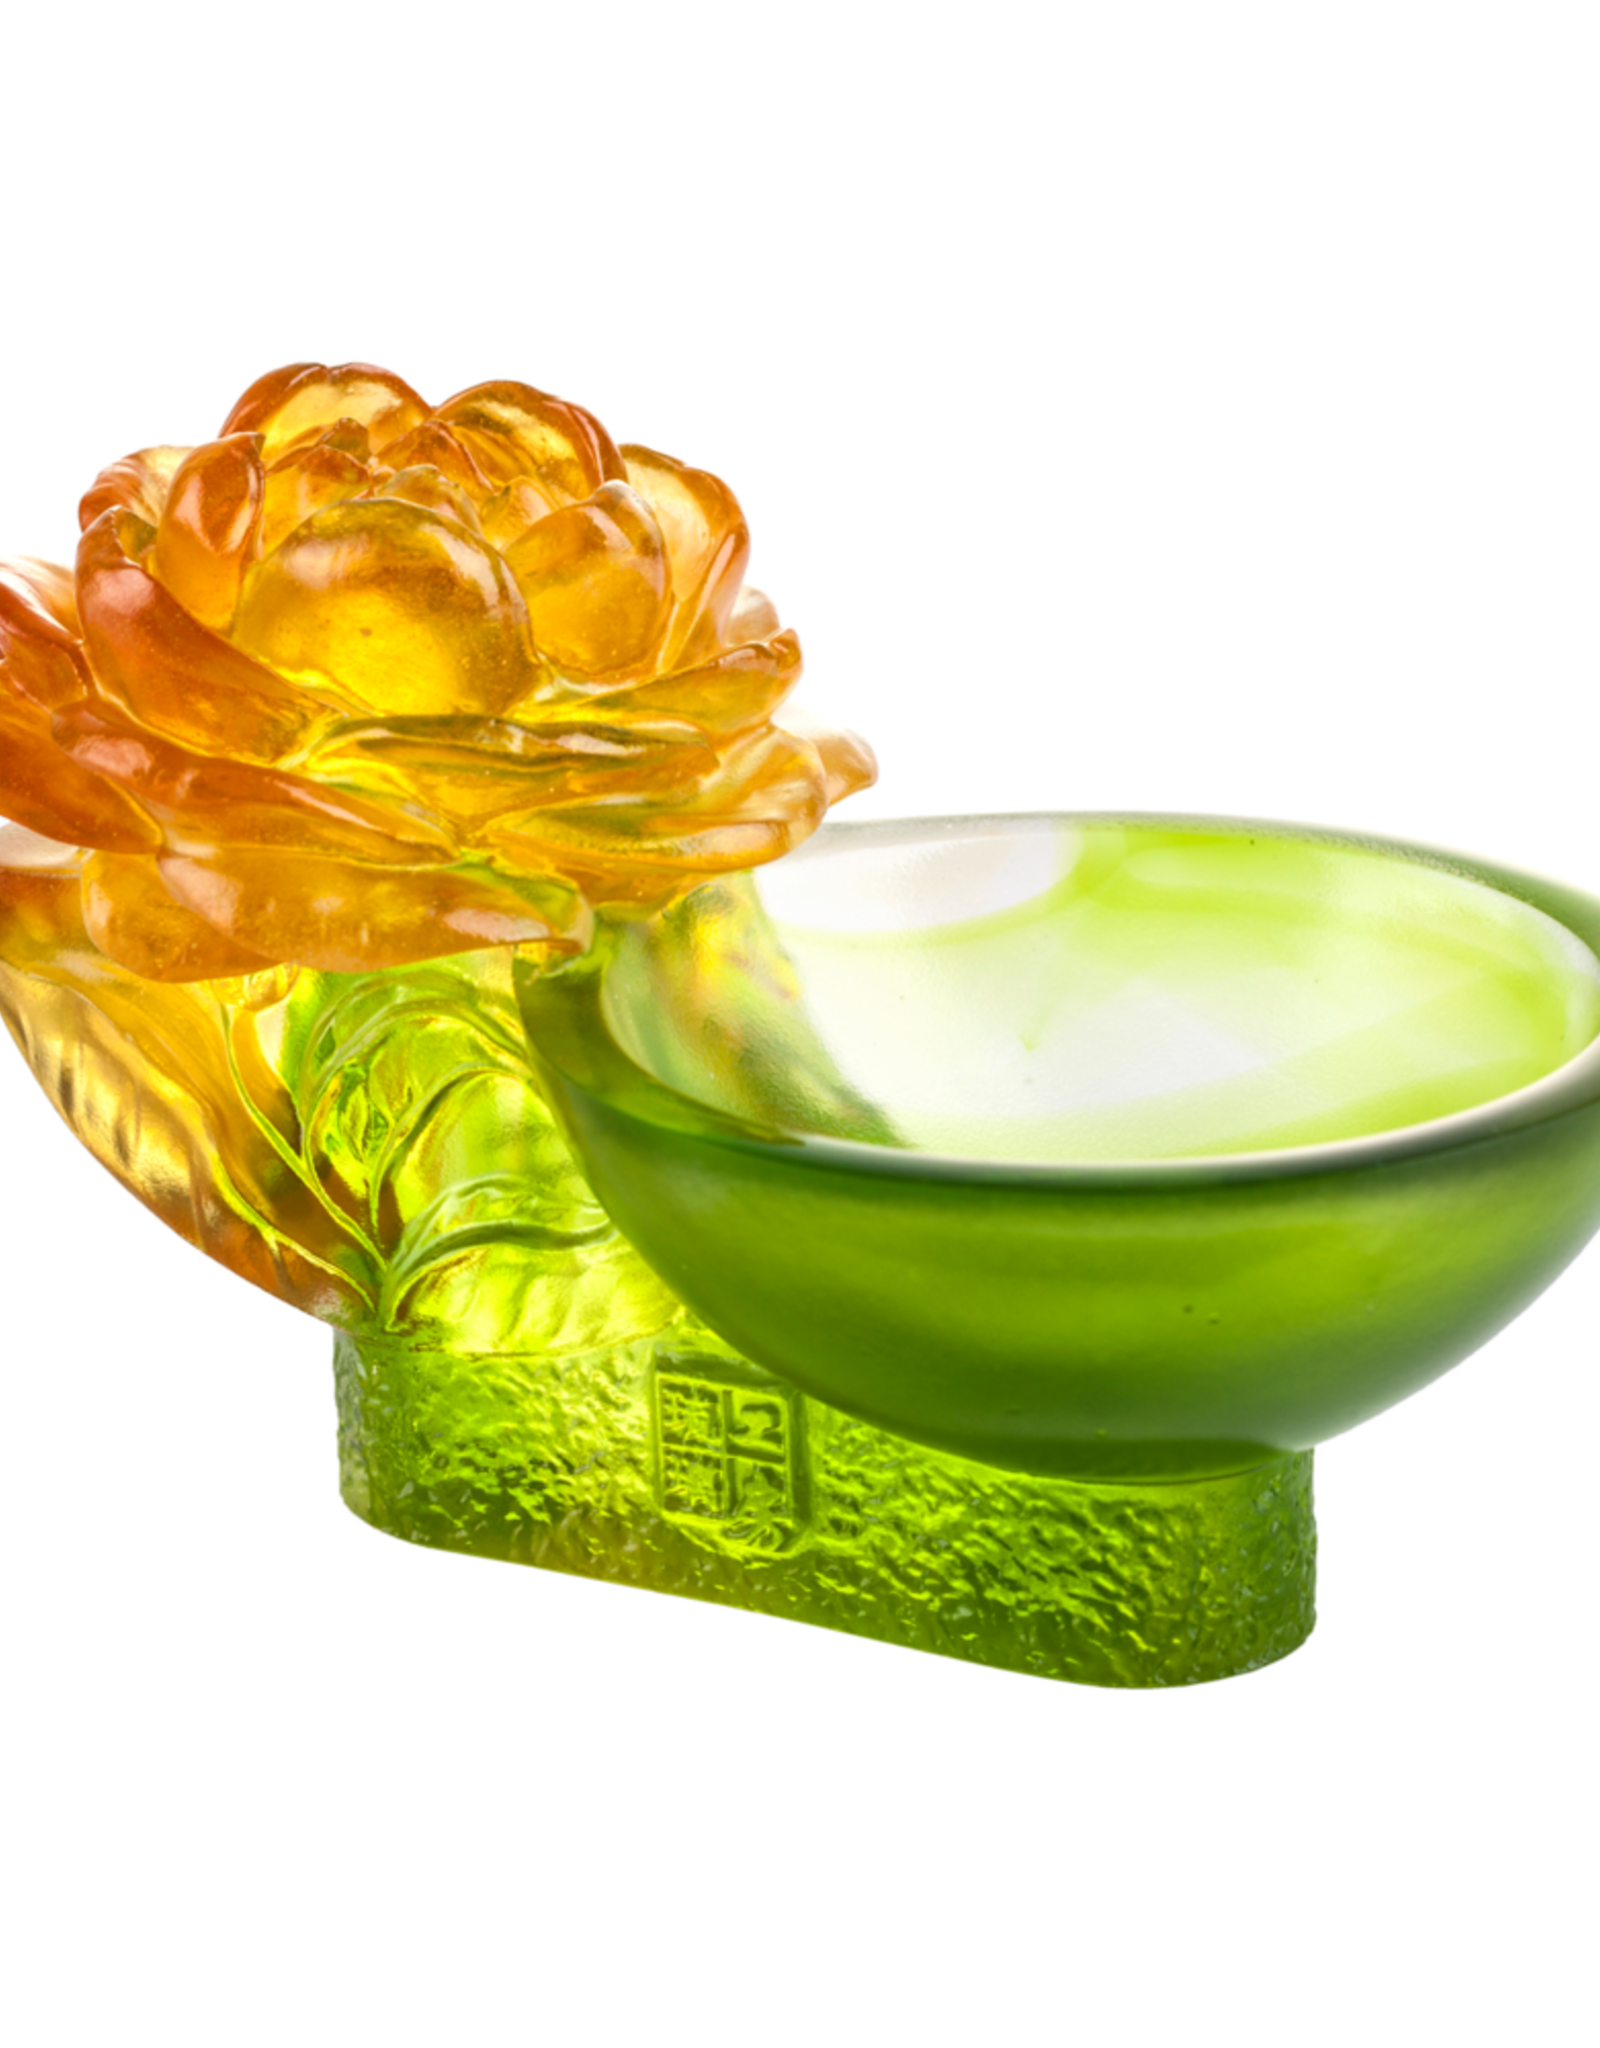 """LIULI Crystal Art Crystal Camellia Bloom """"Destined Harmony"""" Limited Edition in Amber & Green"""